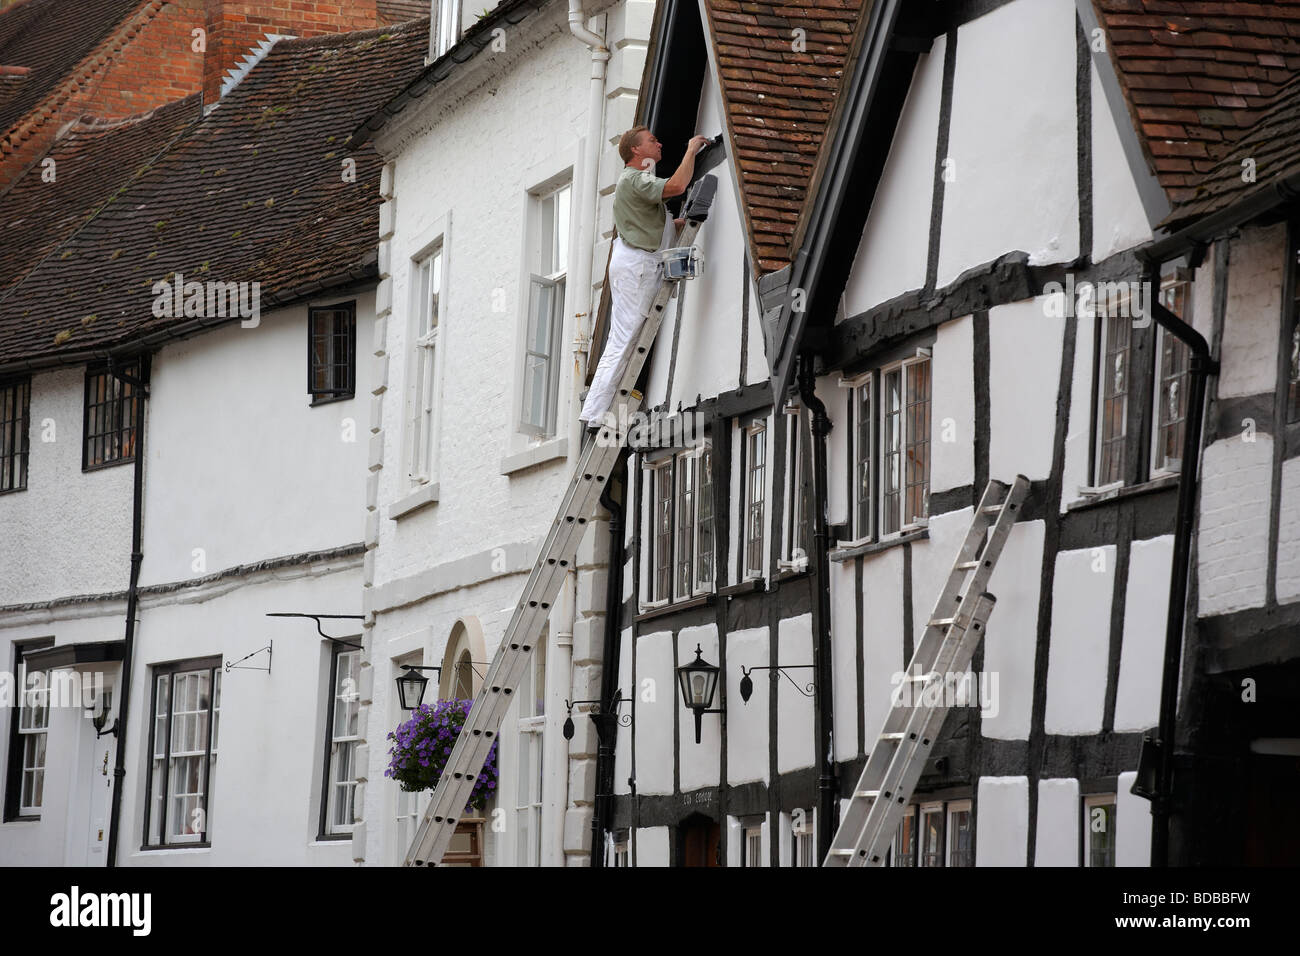 A painter at work on a house in Mill Street in Warwick UK - Stock Image